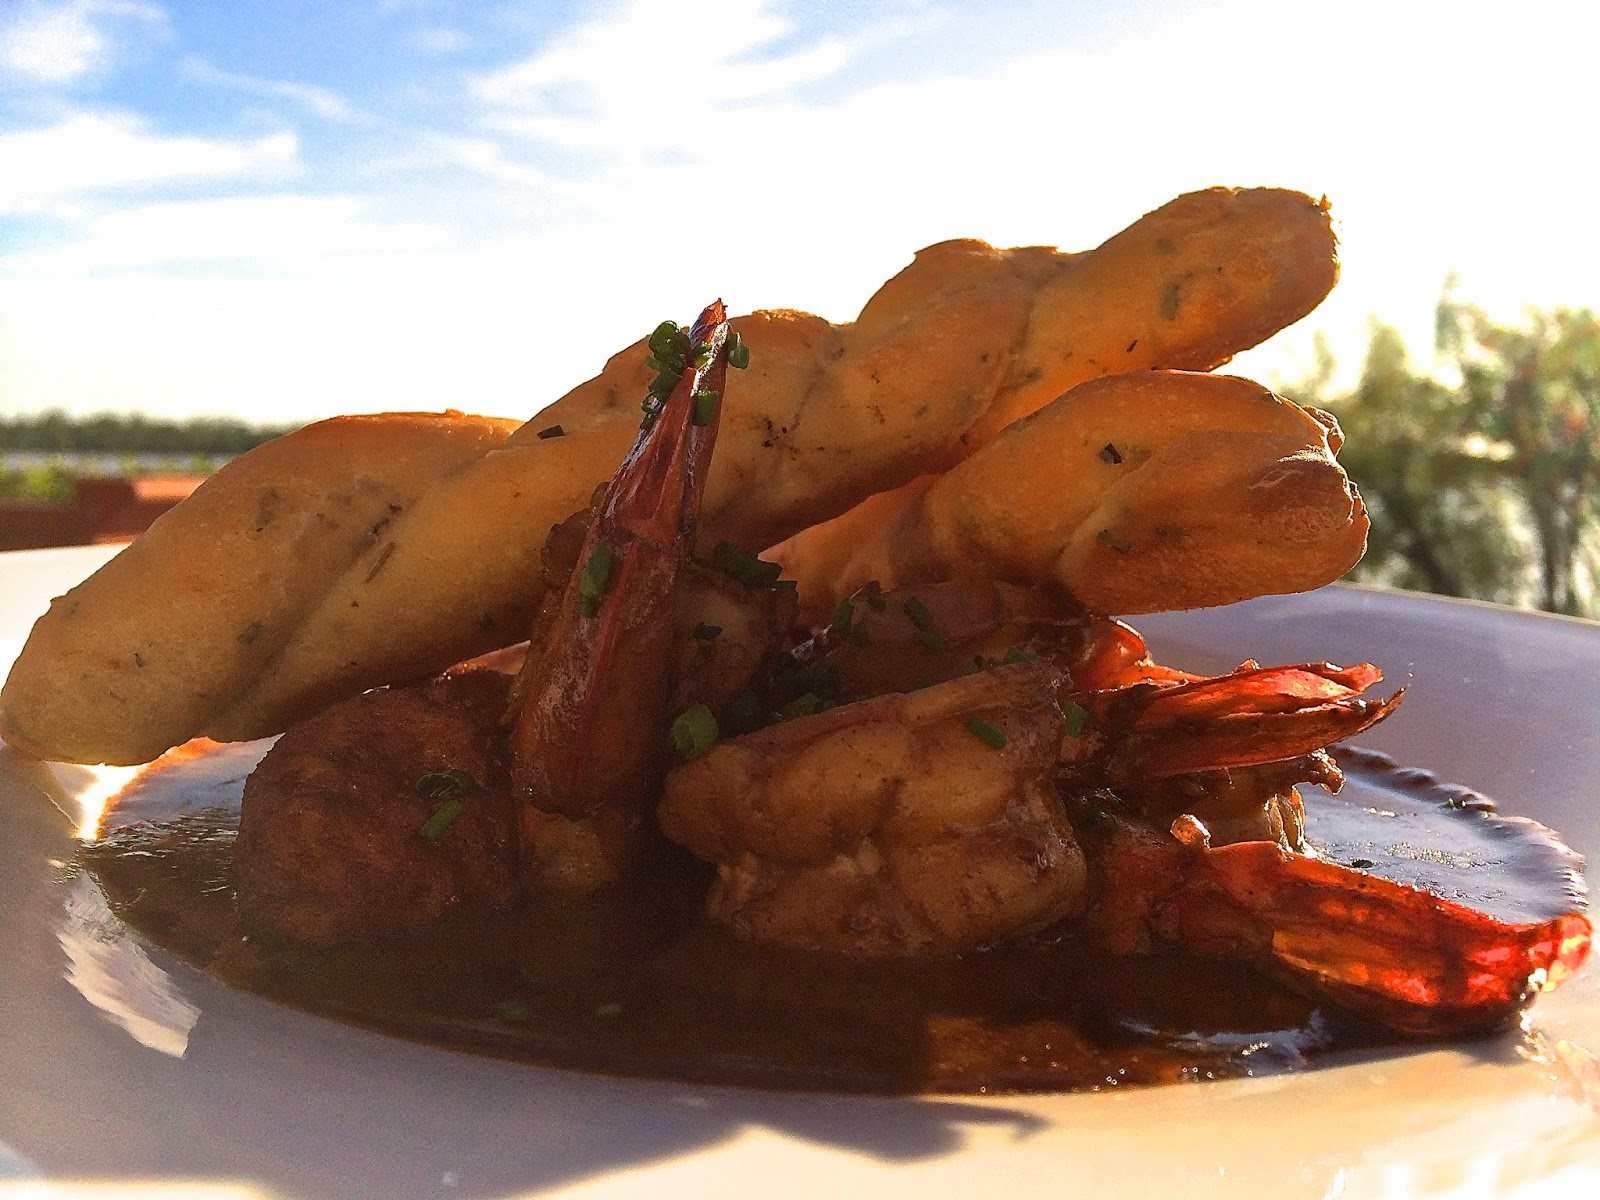 Wood Grilled BBQ Shrimp with Lobster Dumplings and Rustic Stone Focaccia Breadsticks